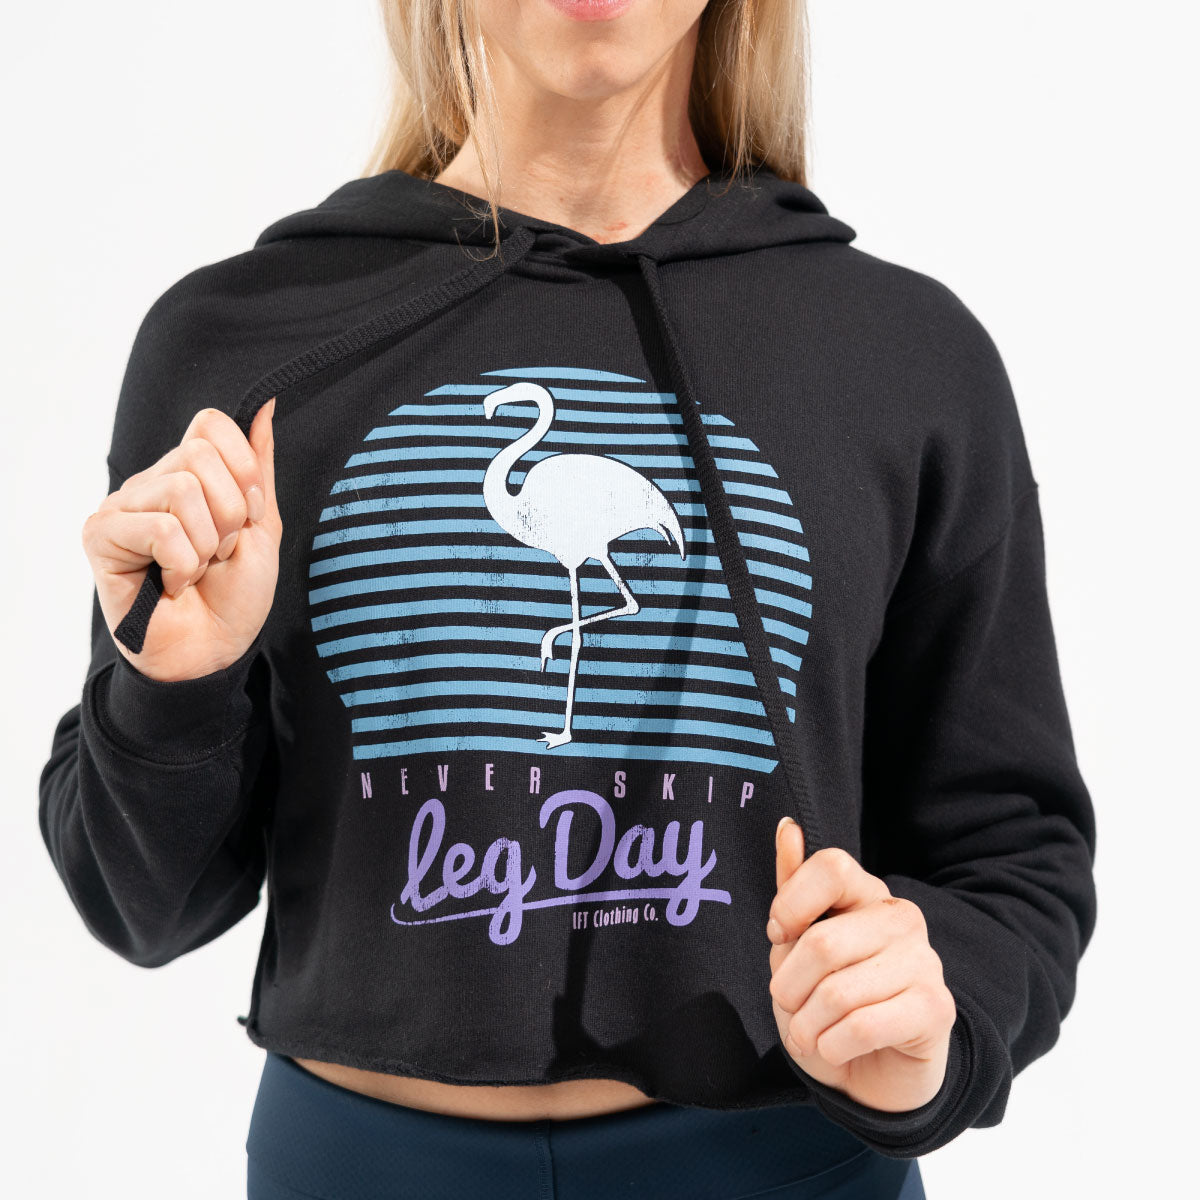 Never Skip Leg Day Cropped Fleece Hoodie